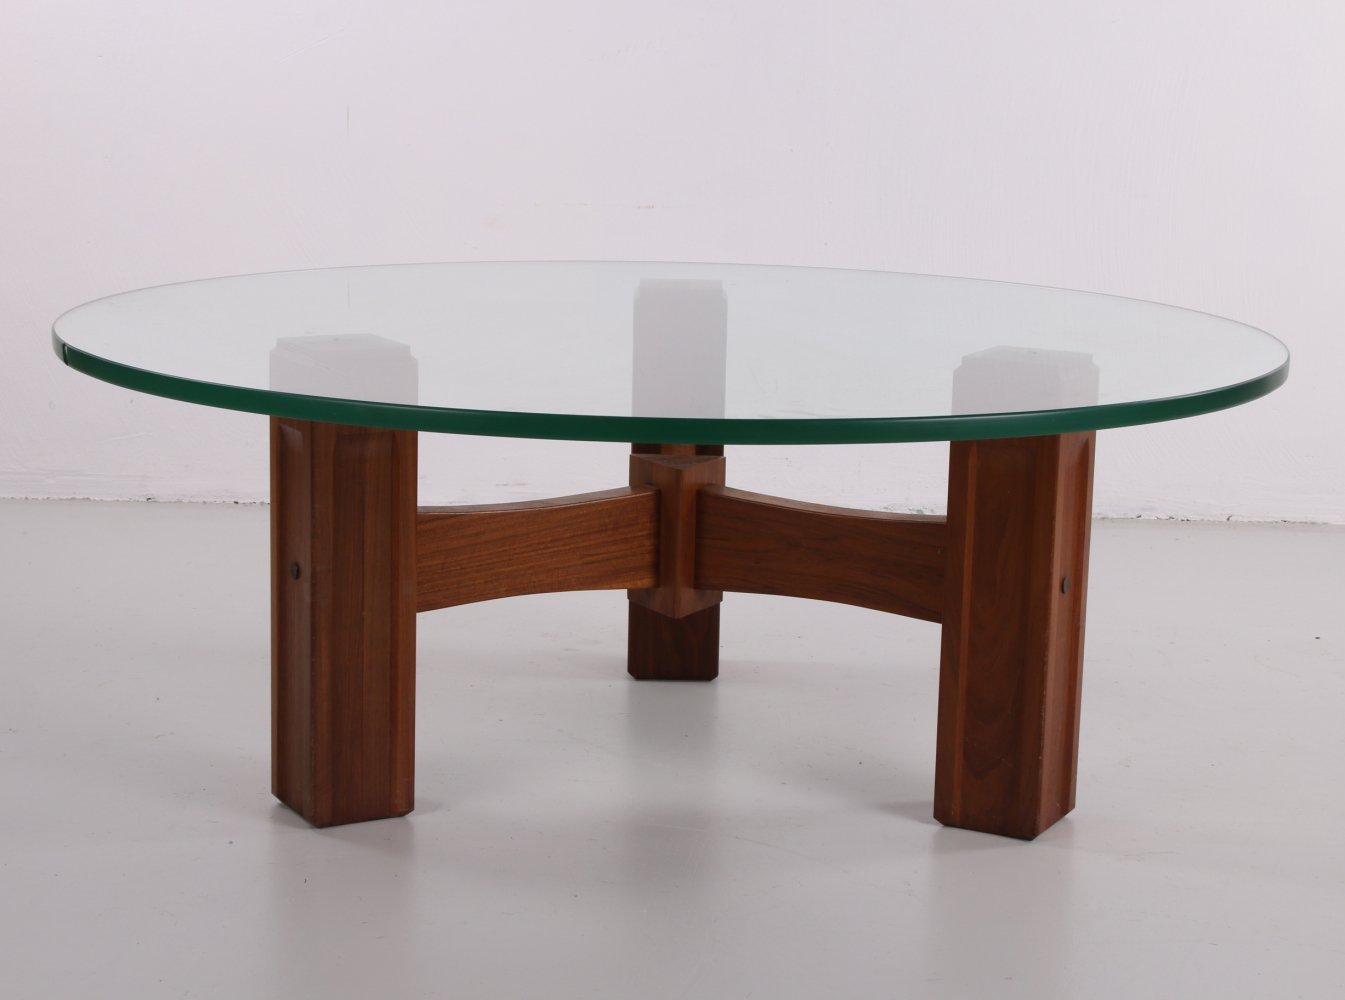 Brutalist round coffee table, 1970s